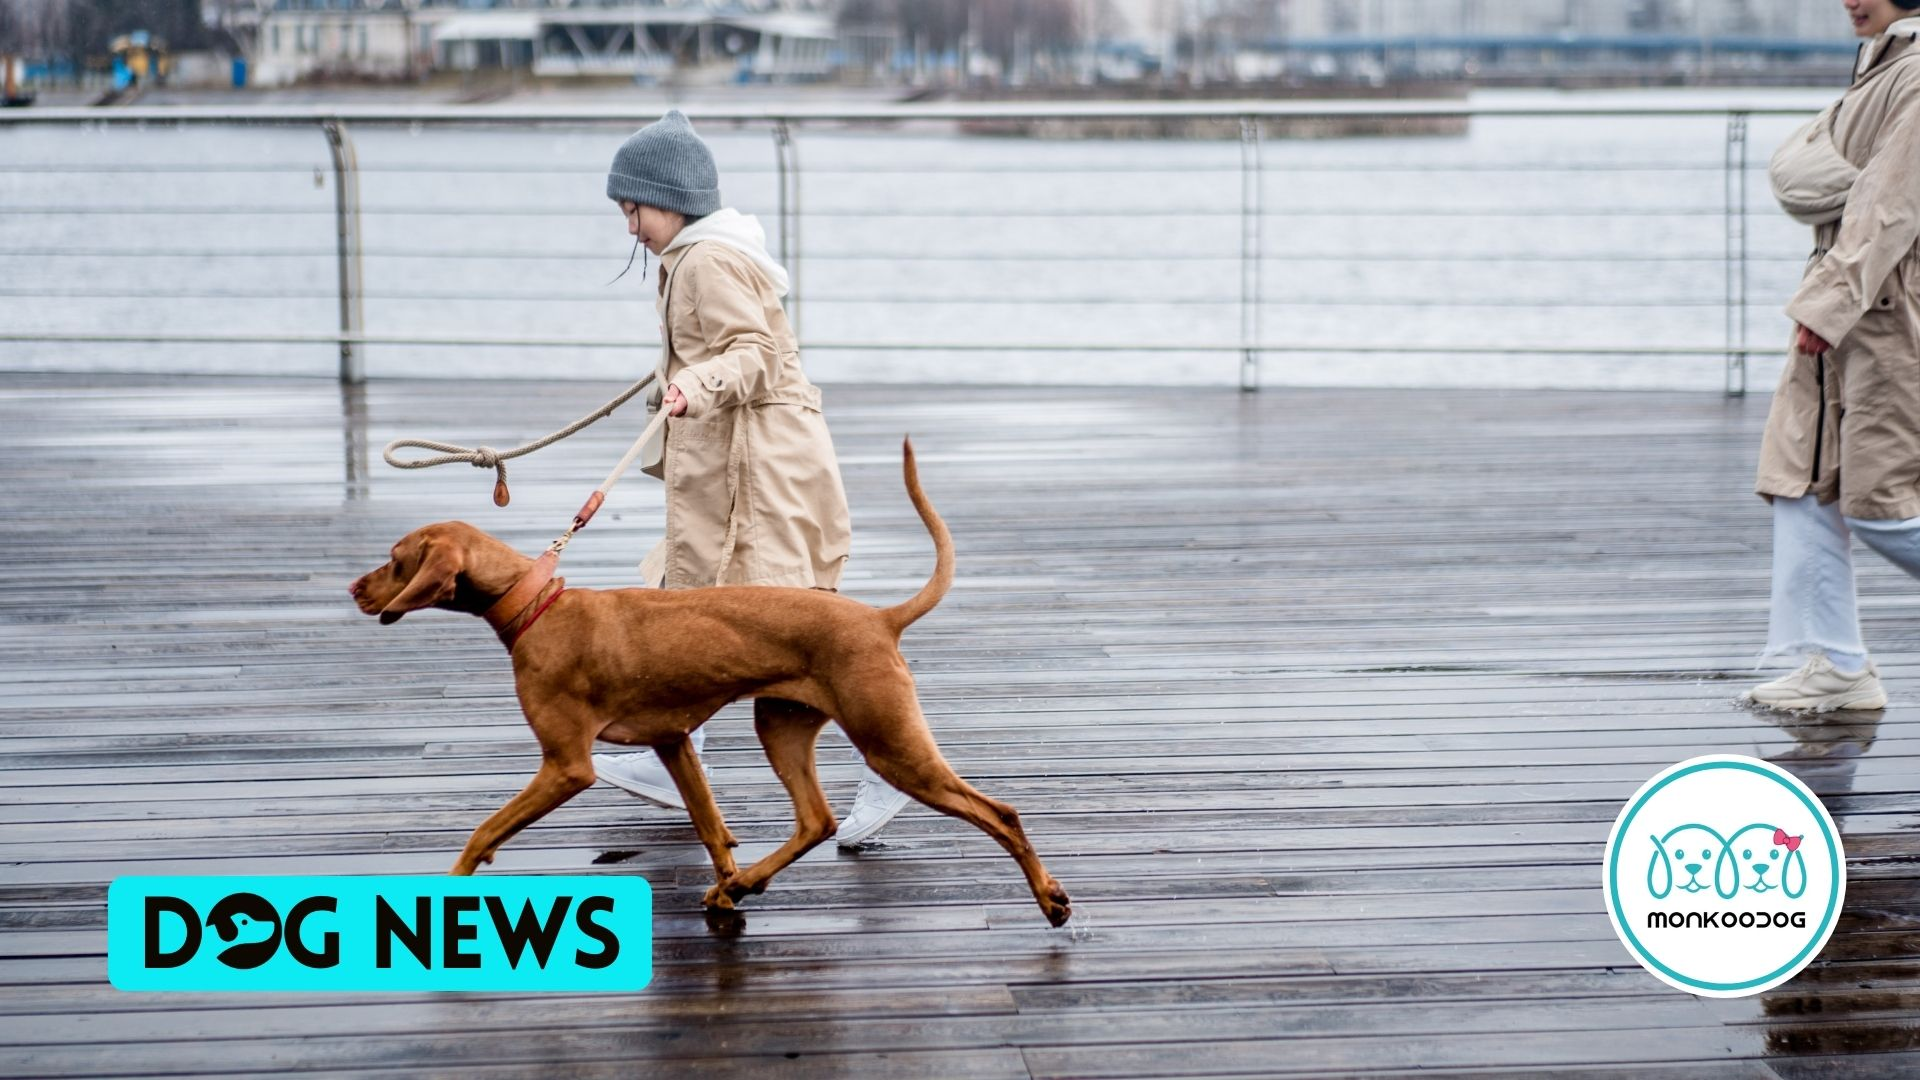 Study Shows Lots Of Dog Walks Can Prevents CDD - Canine Form Of Dementia In Dogs